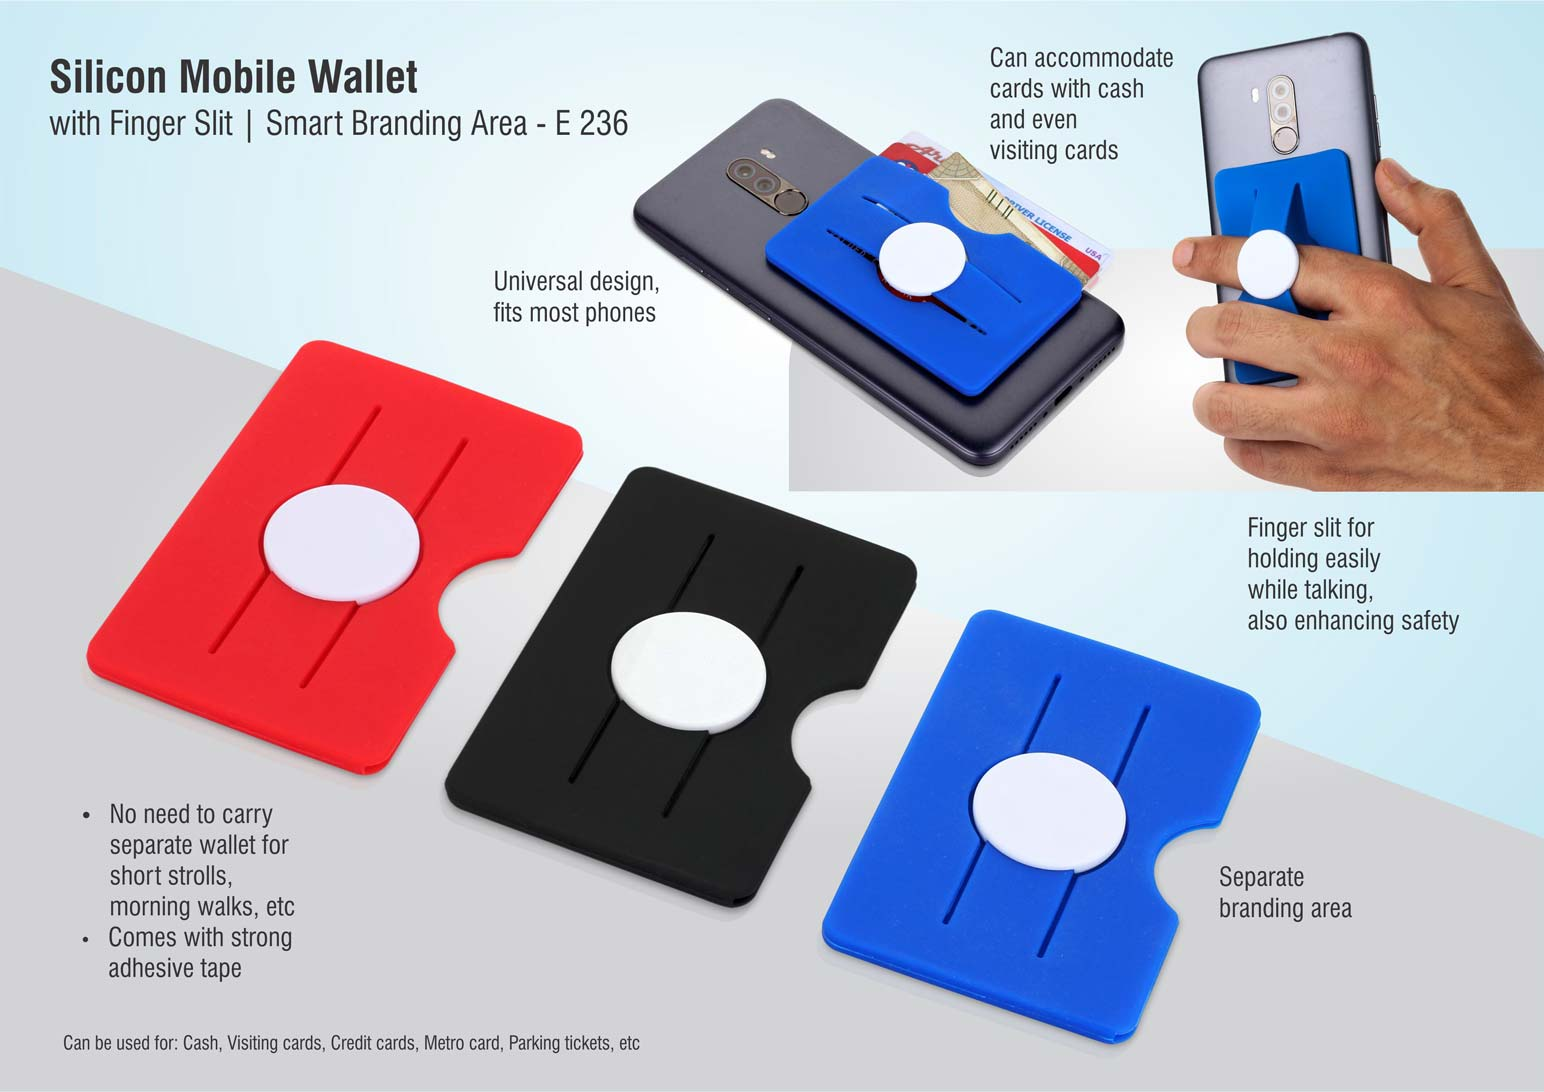 E236 - Silicon mobile wallet with finger slit | Smart branding area